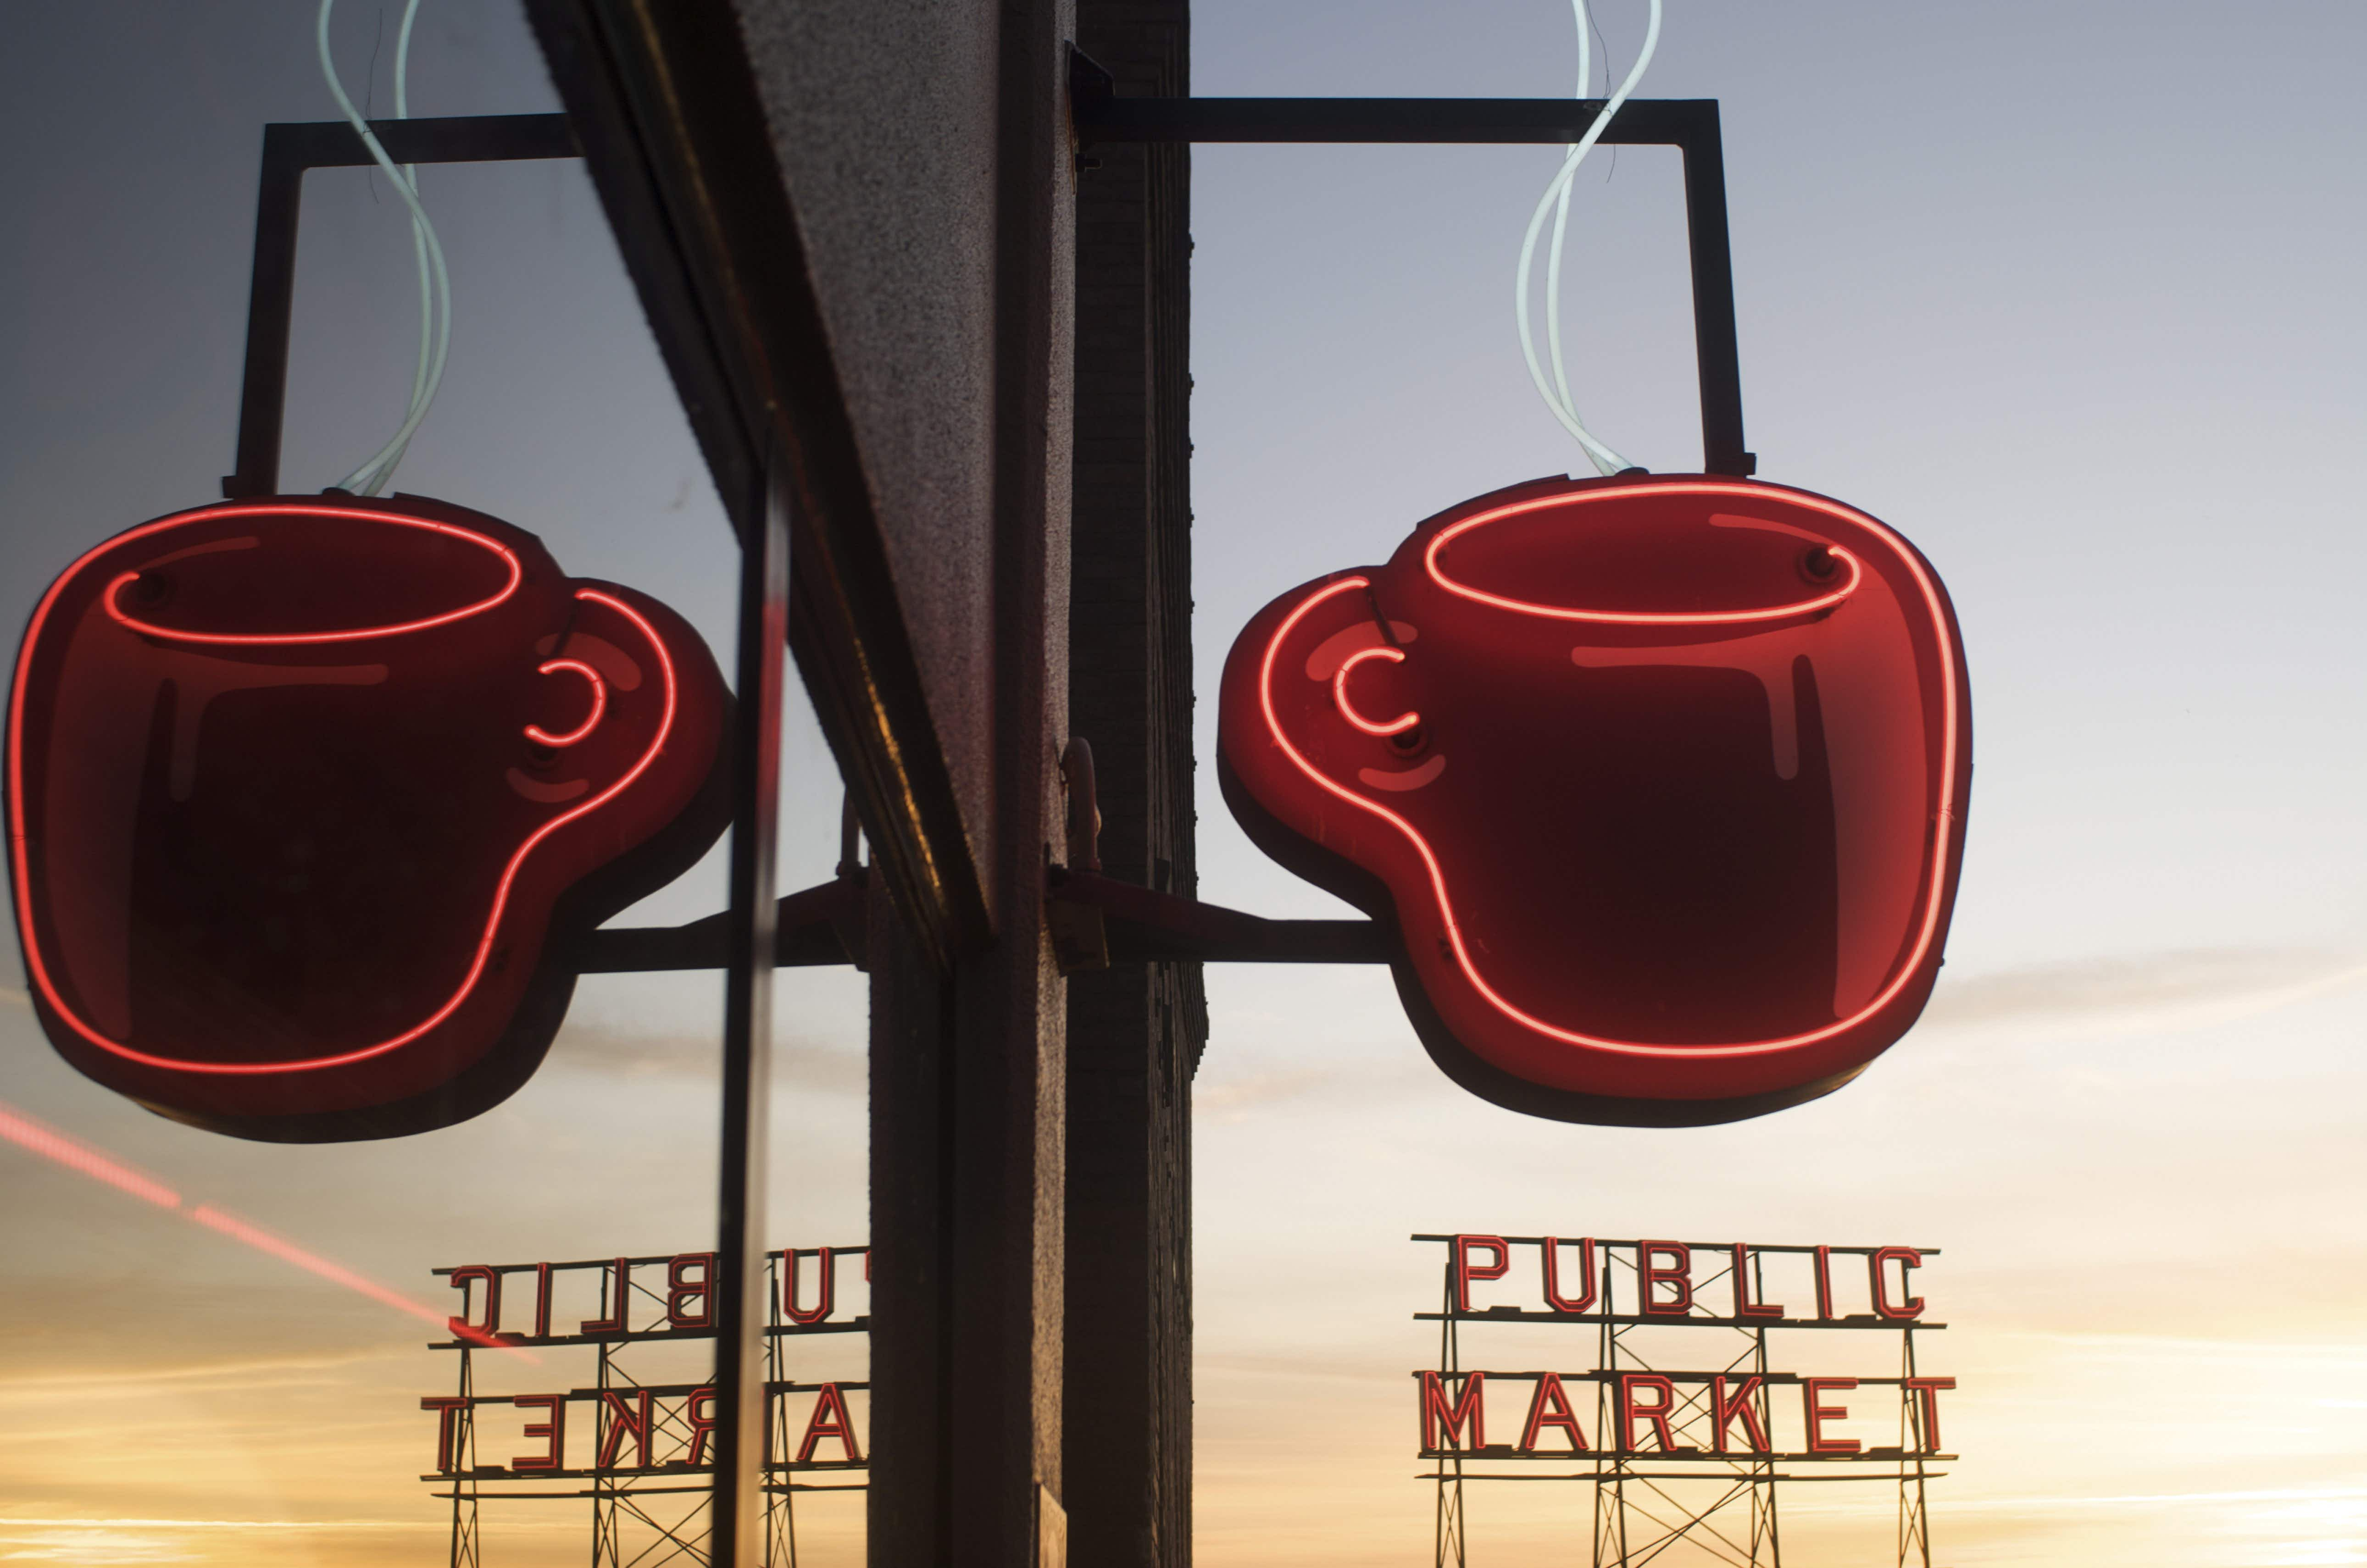 These are officially the best cities to get coffee in the USA